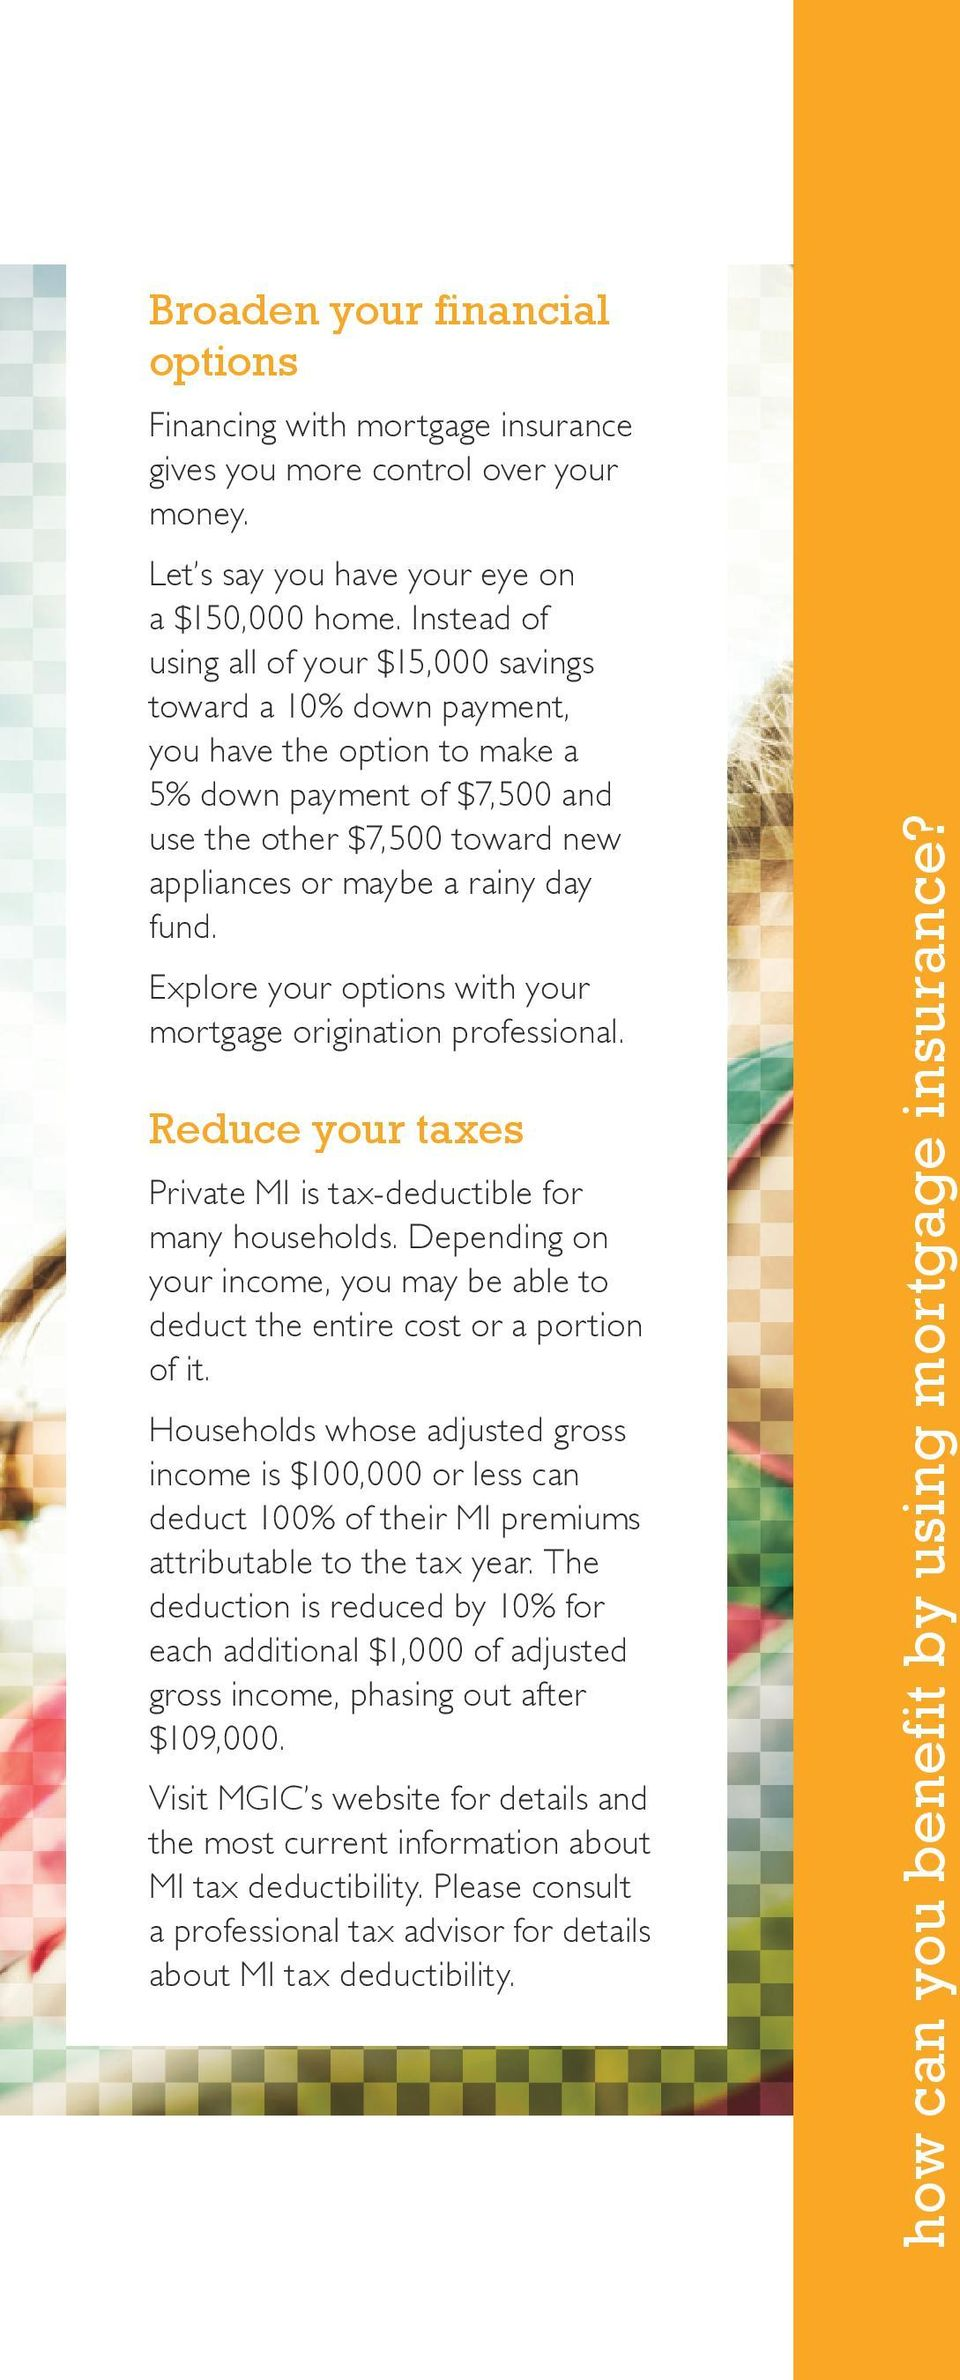 fund. Explore your options with your mortgage origination professional. Reduce your taxes Private MI is tax-deductible for many households.